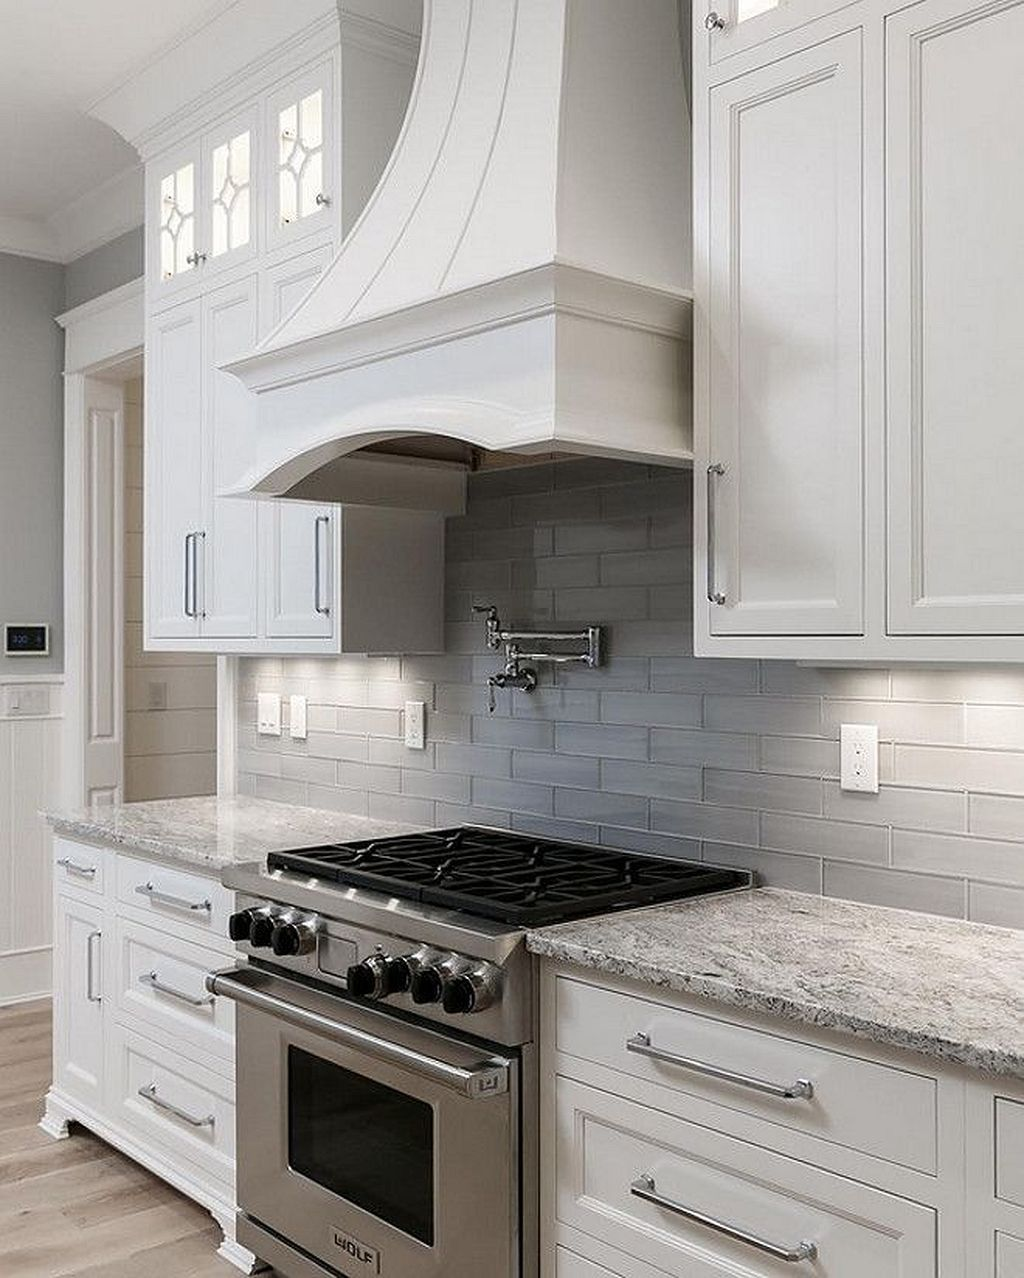 White Cabinets Gray Subway Tile Kashmir White Granite: Kitchen / Stainless Steel Stove / Range Hood